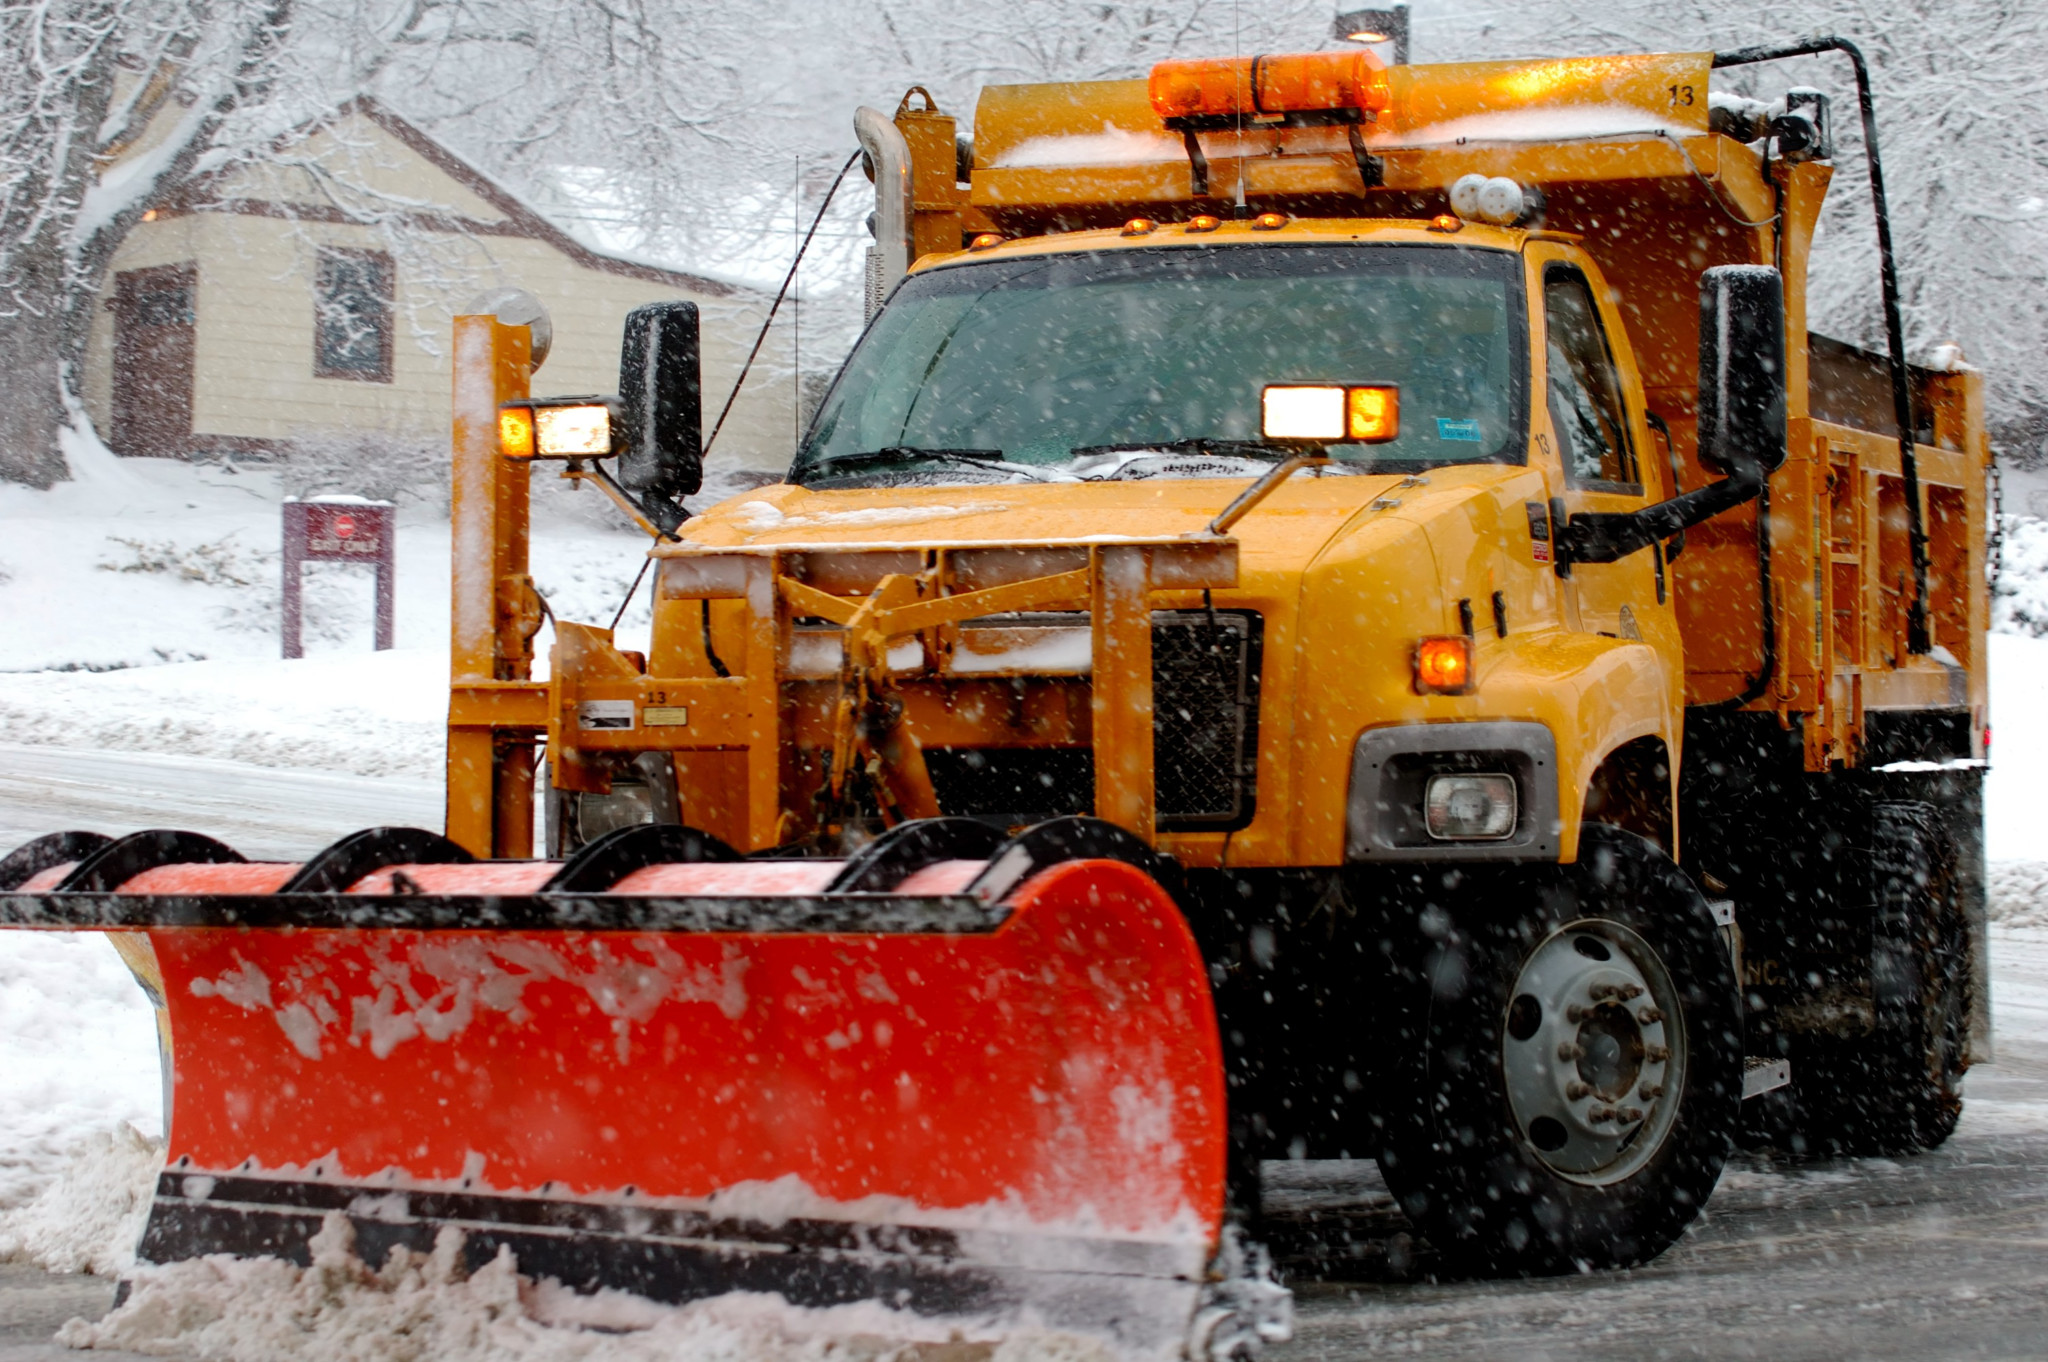 Liability Insurance for Snowplow Operations